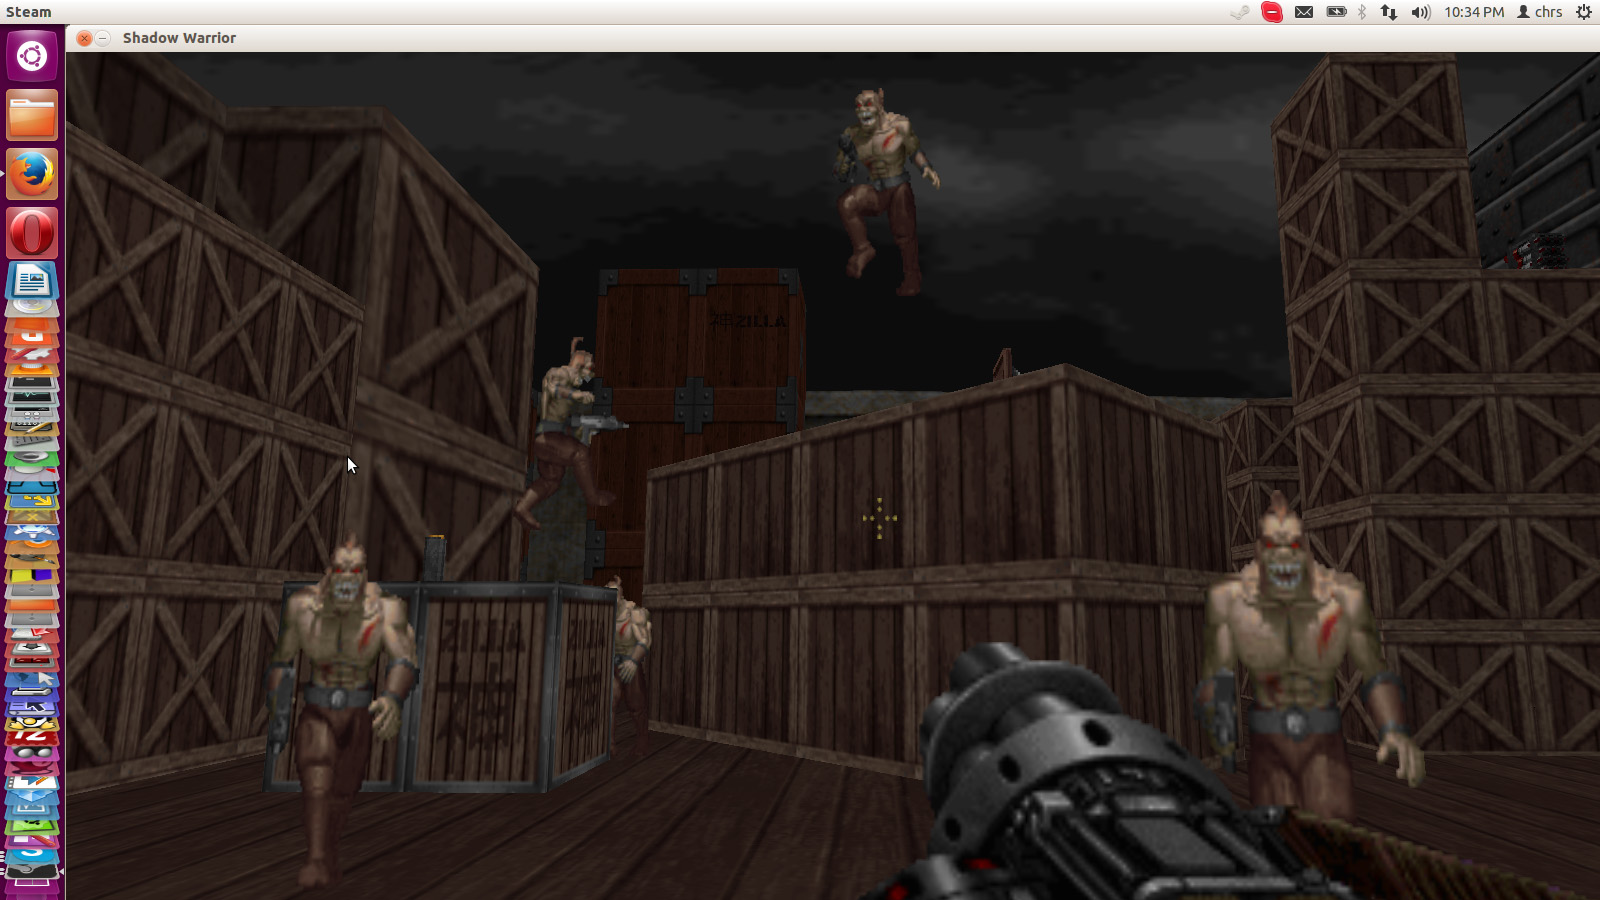 shadow_warrior_redux_linux_2.jpg